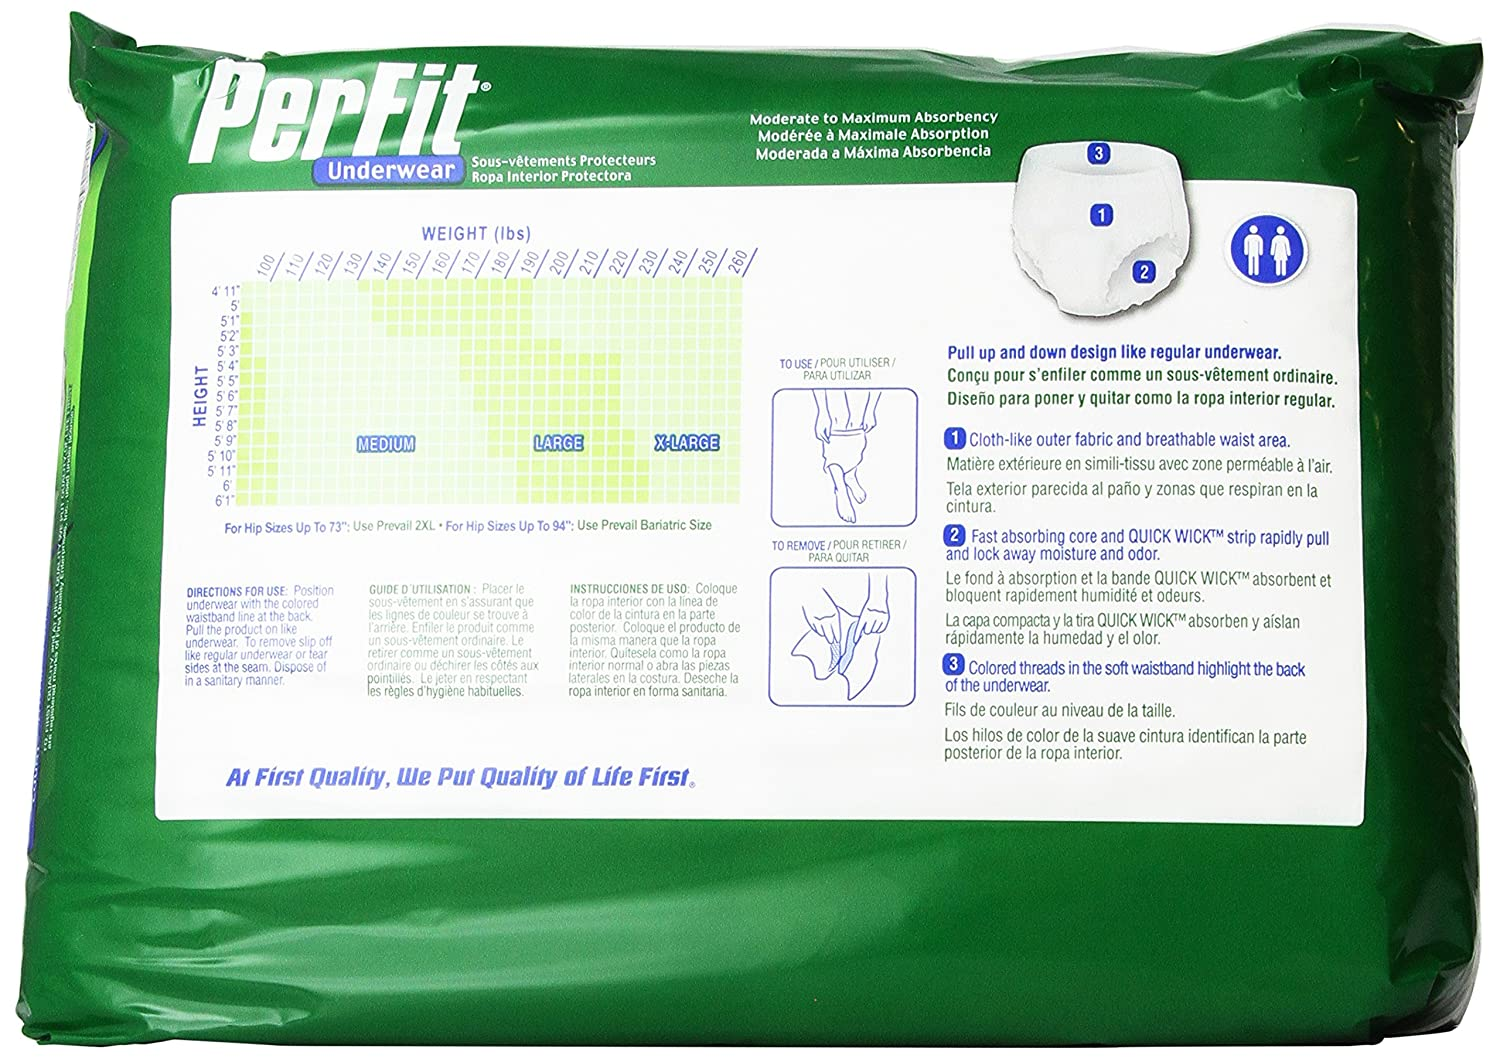 Amazon.com: Prevail Per-Fit Extra Absorbency Incontinence Underwear, Large, 18-Count: Health & Personal Care